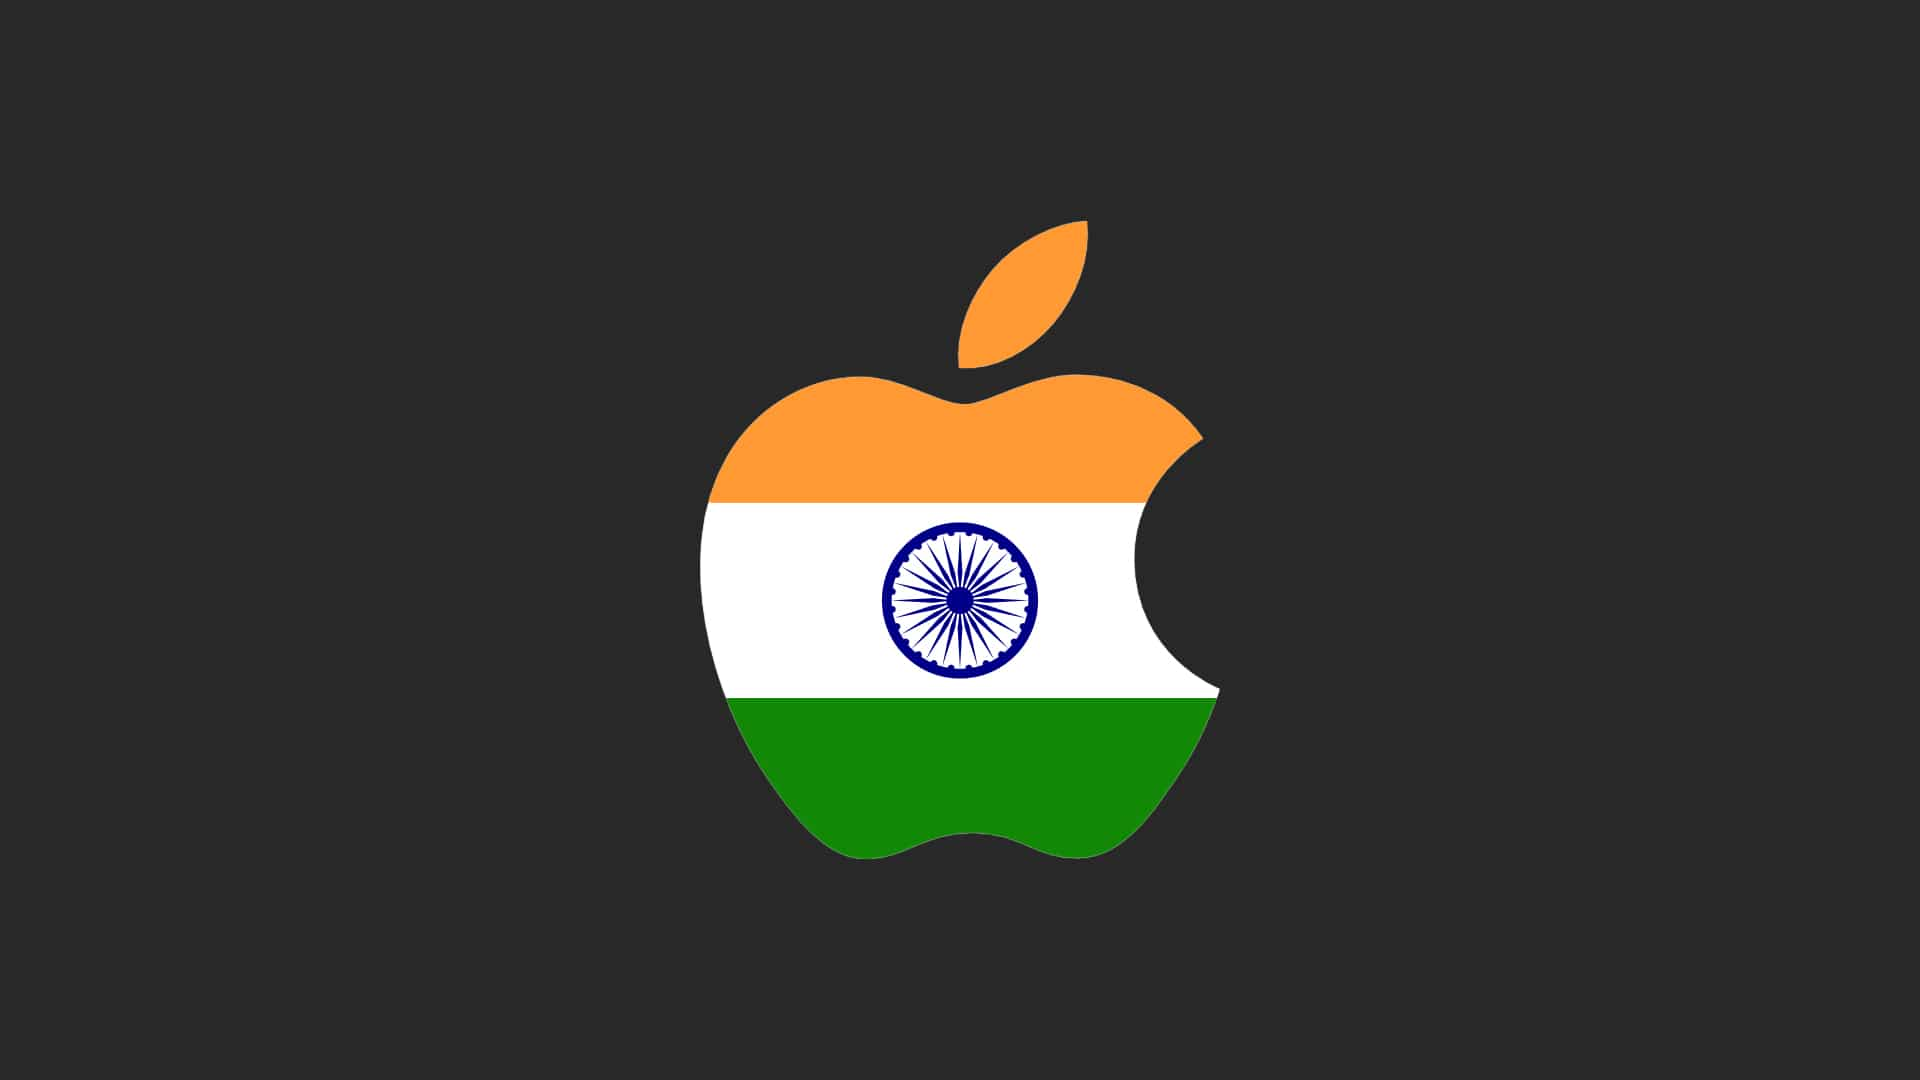 Bandeira da Índia no logo da Apple